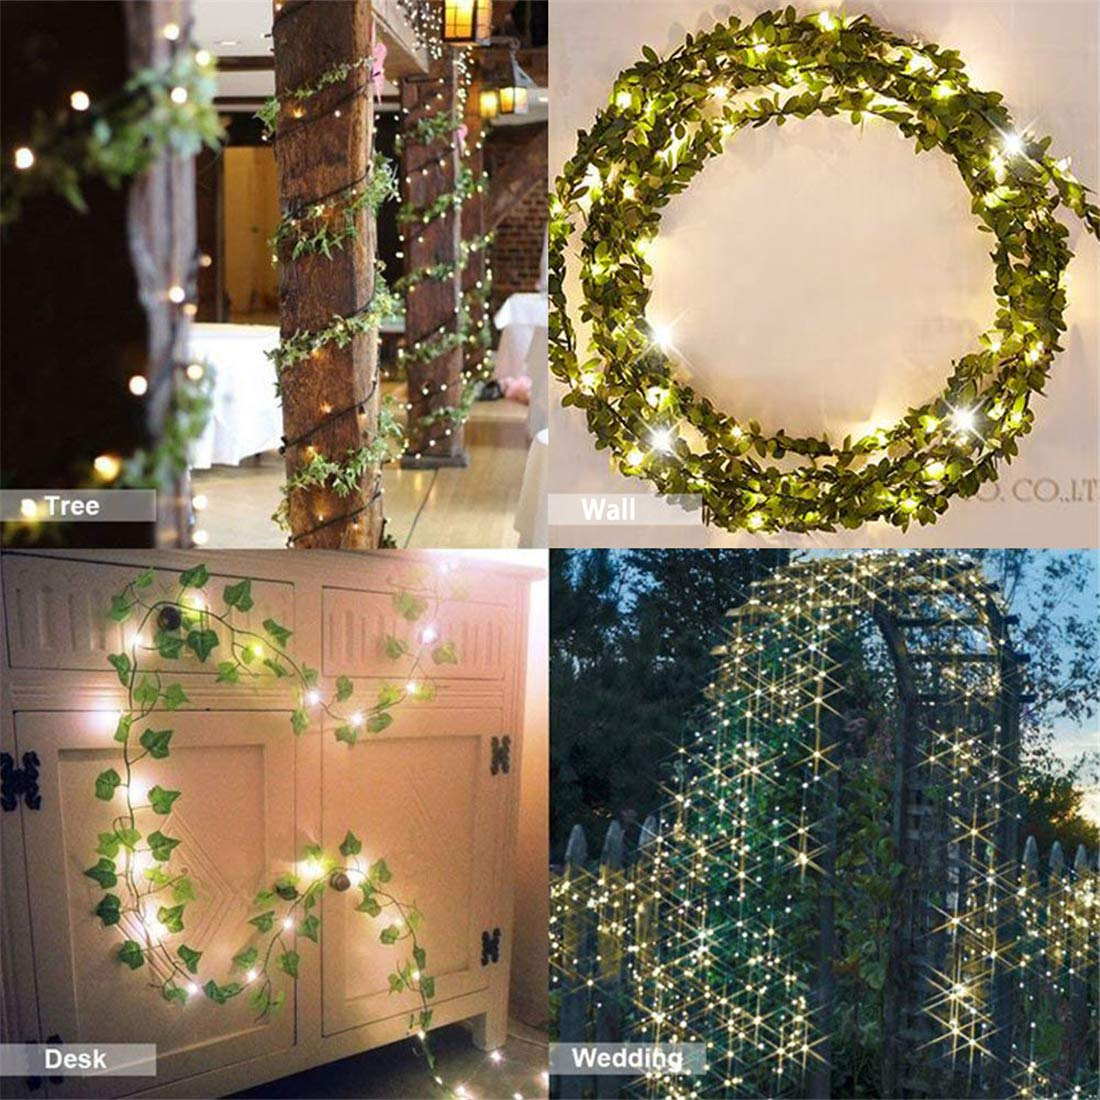 84 FT Artificial Ivy 12 Pack Ivy Vine Garland Ivy Leaves Greenery Garlands Hanging with 100 LED String Light Fake Leaf Plants Faux Green Flowers Decor for Home Kitchen Garden Office Wedding Wall